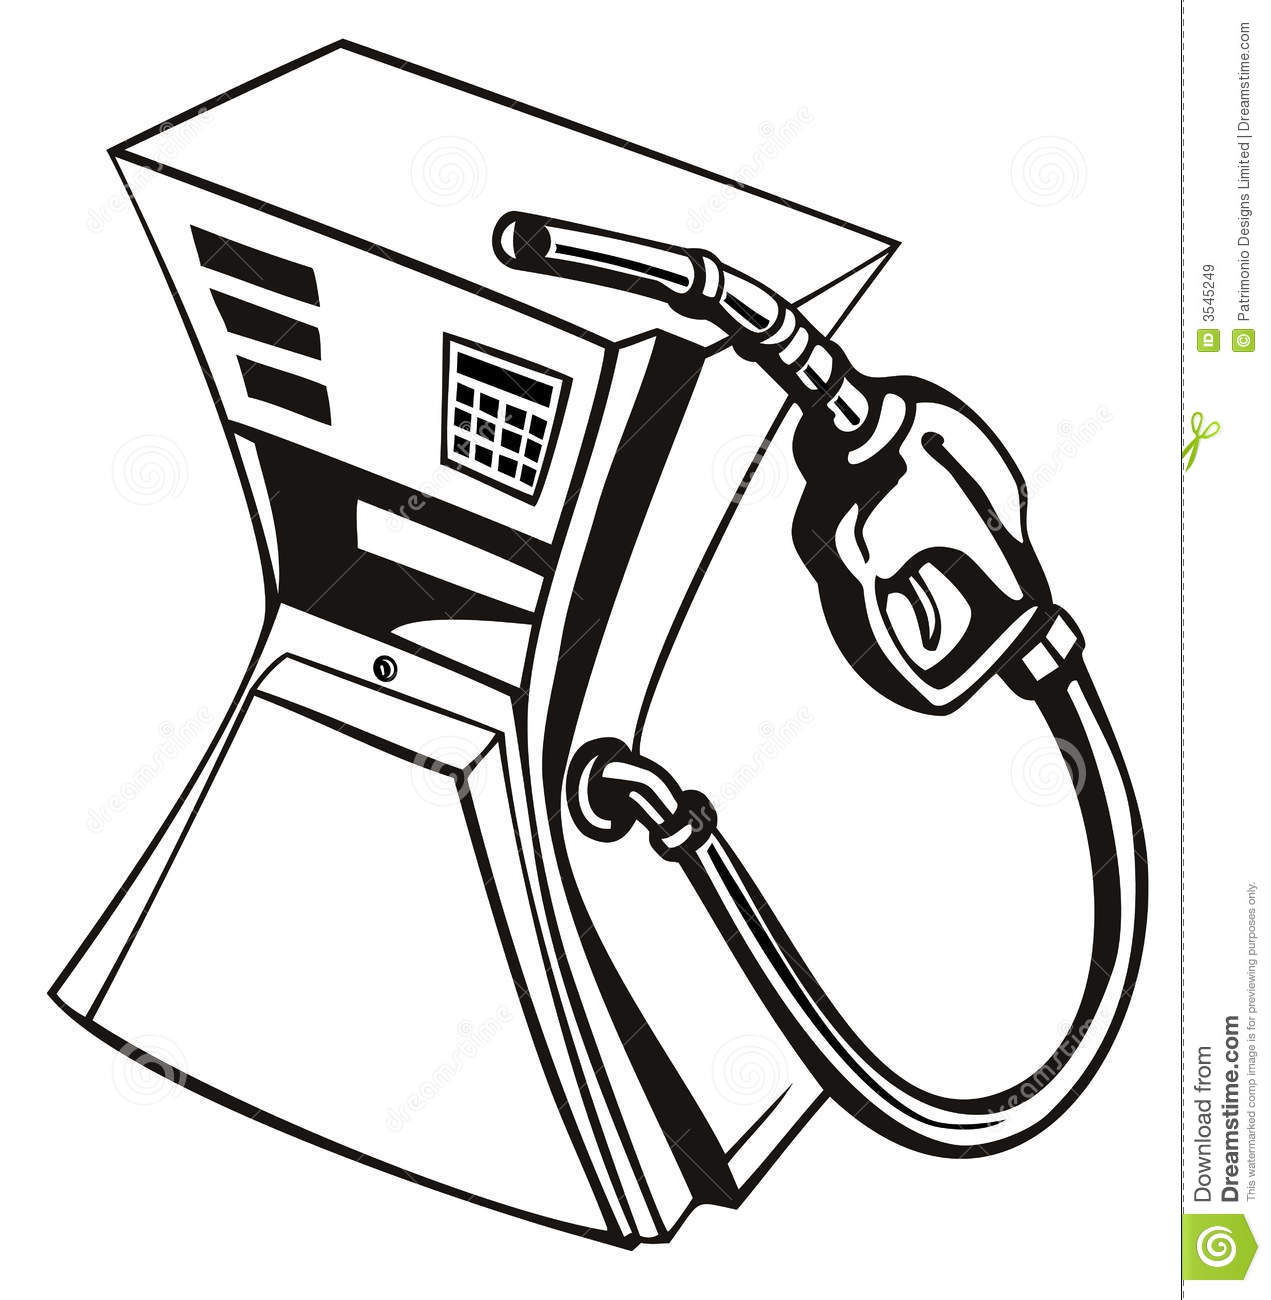 Gas pump squeezed stock vector. Illustration of petrol